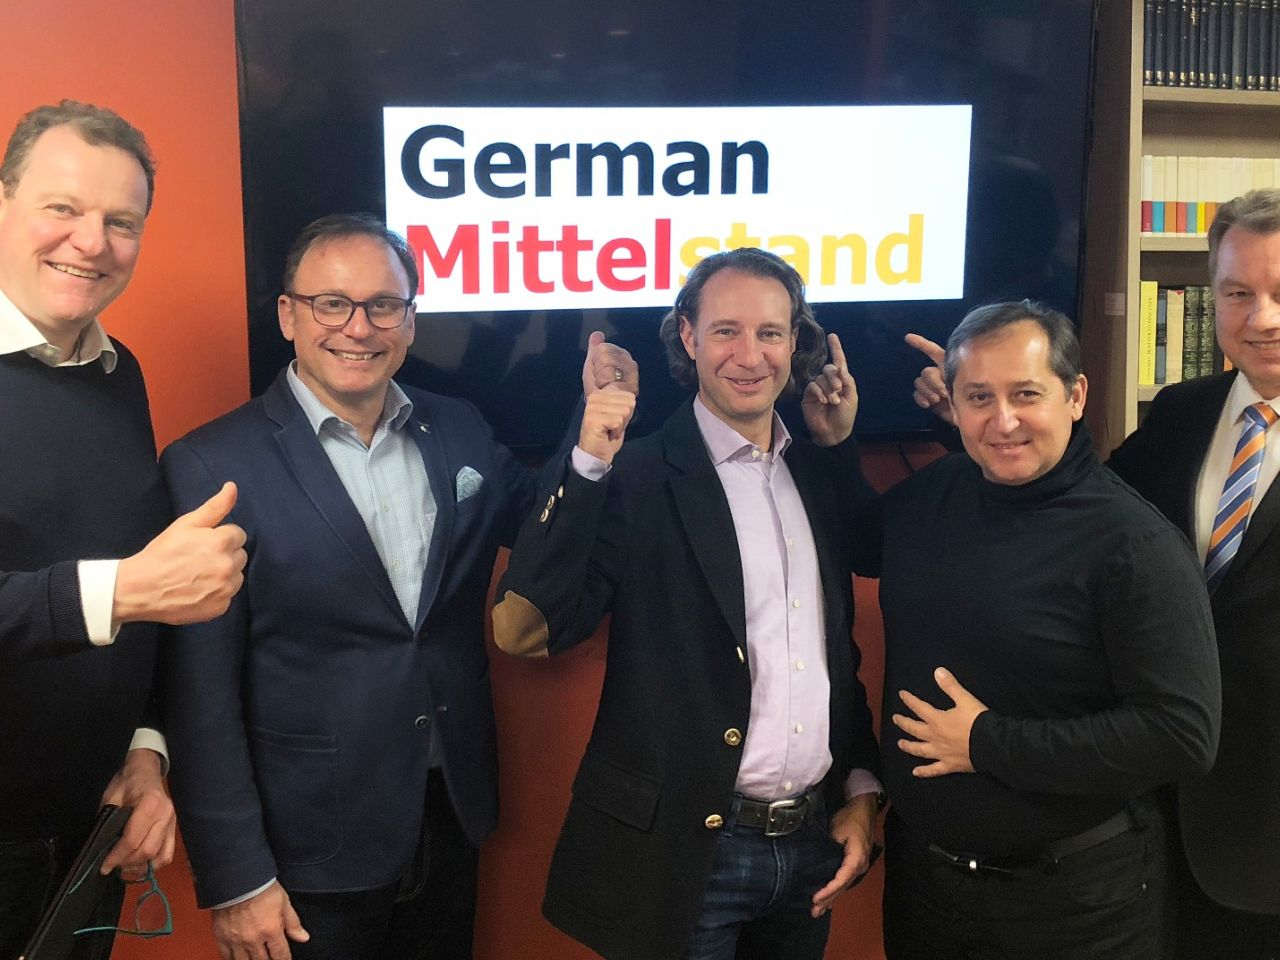 We go for it. Founding of German Mittelstand Network